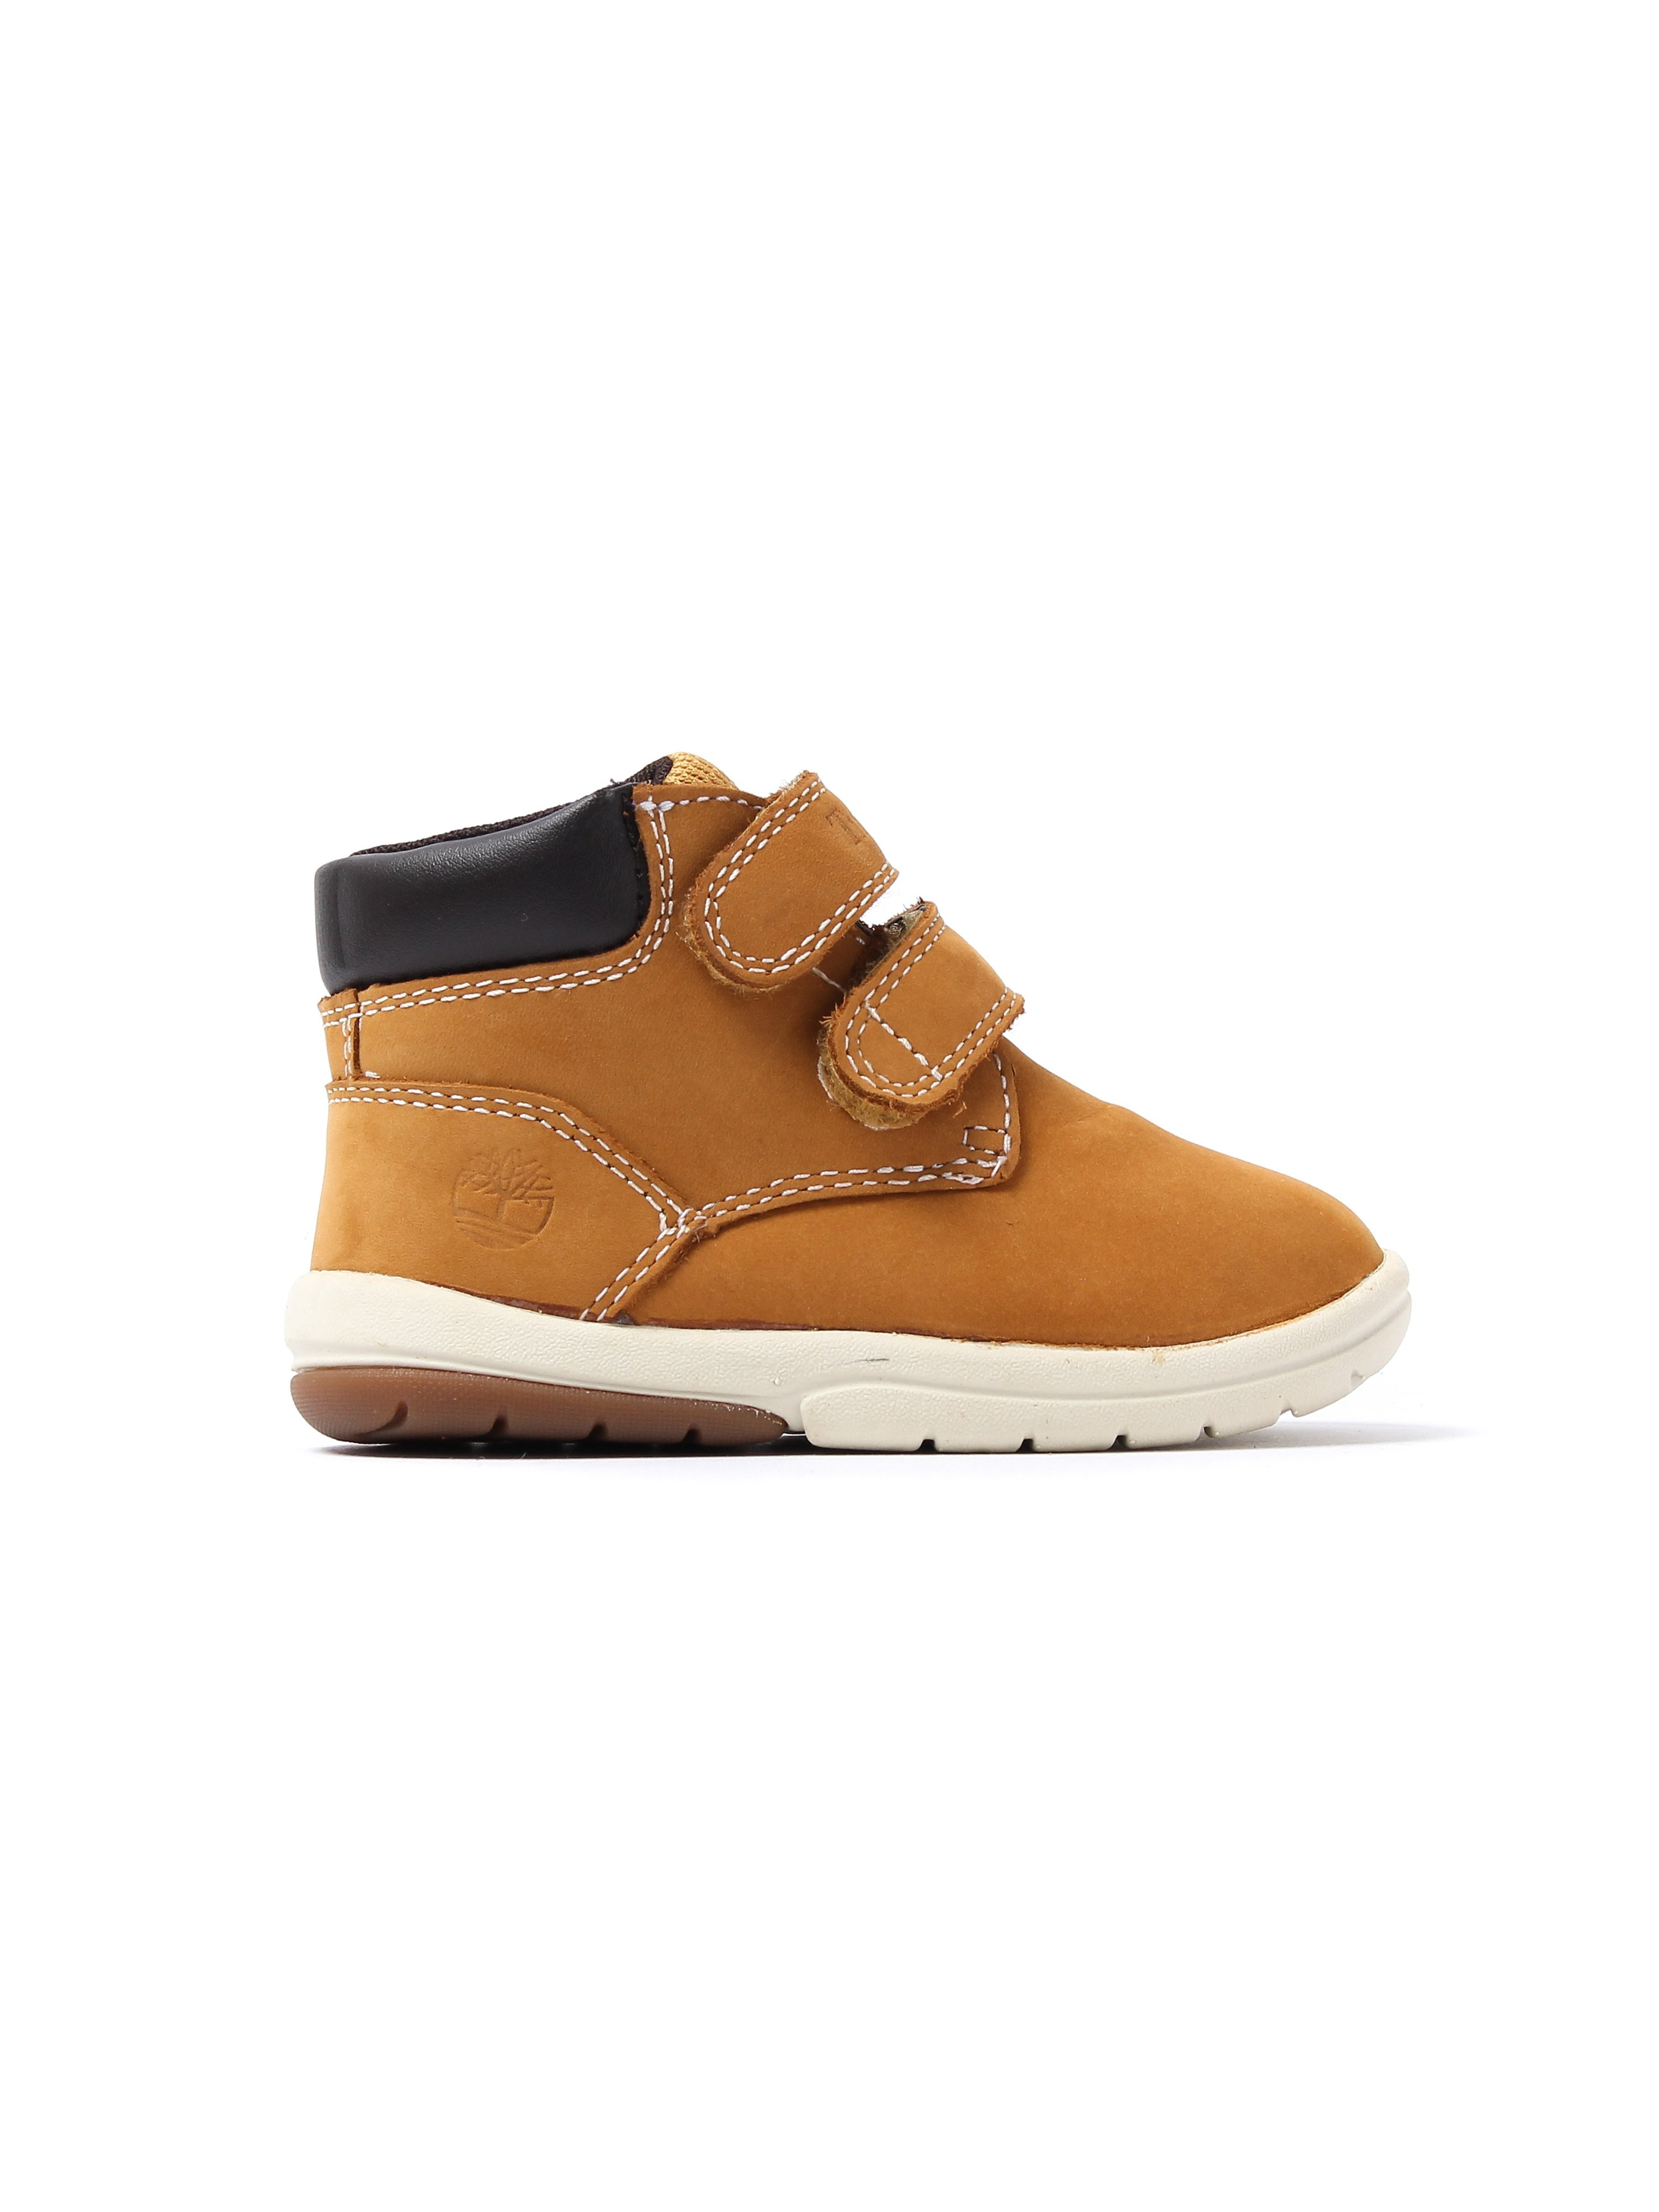 Timberland Infant New Toddle Tracks Boots - Wheat